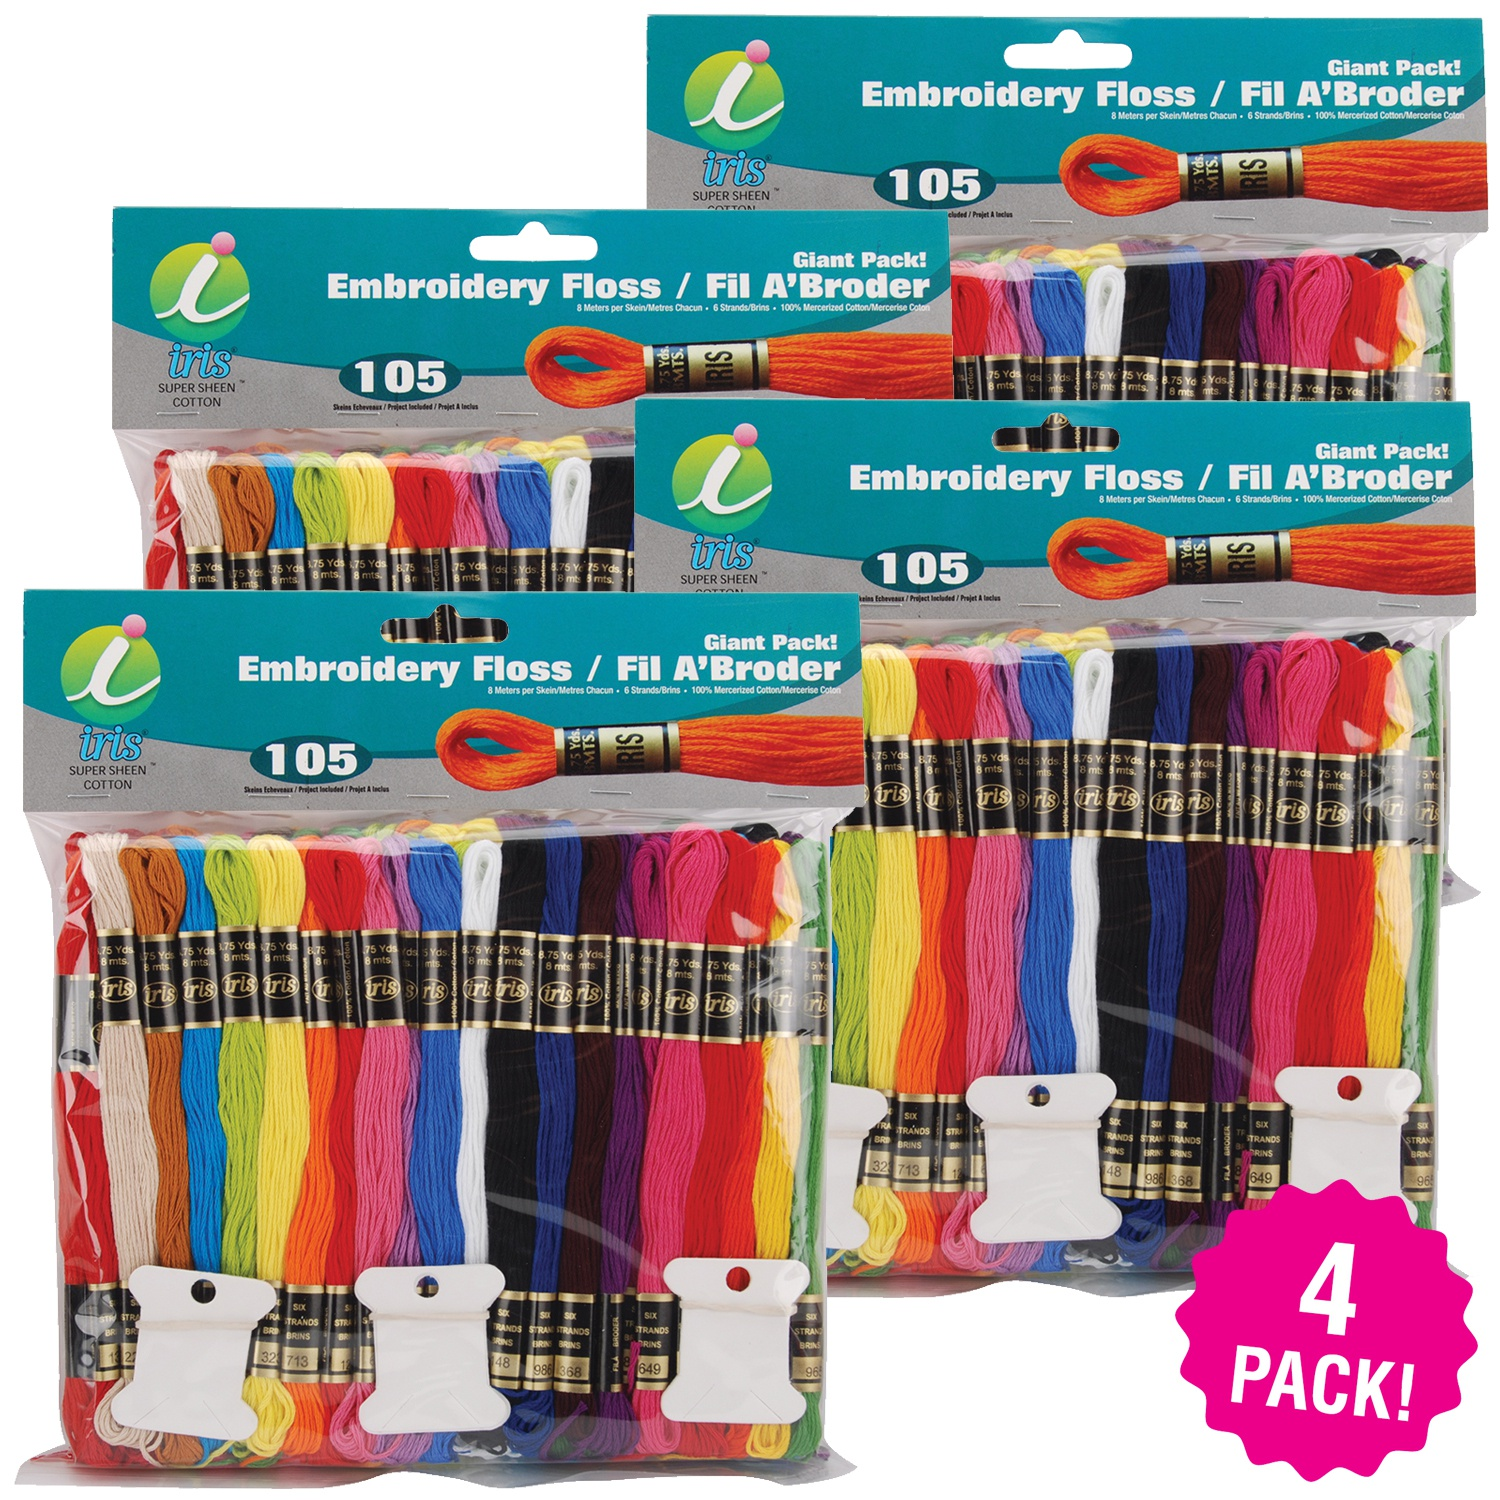 Iris Embroidery Floss Giant Pack 8.7yd 105 Count, Multipack of 4